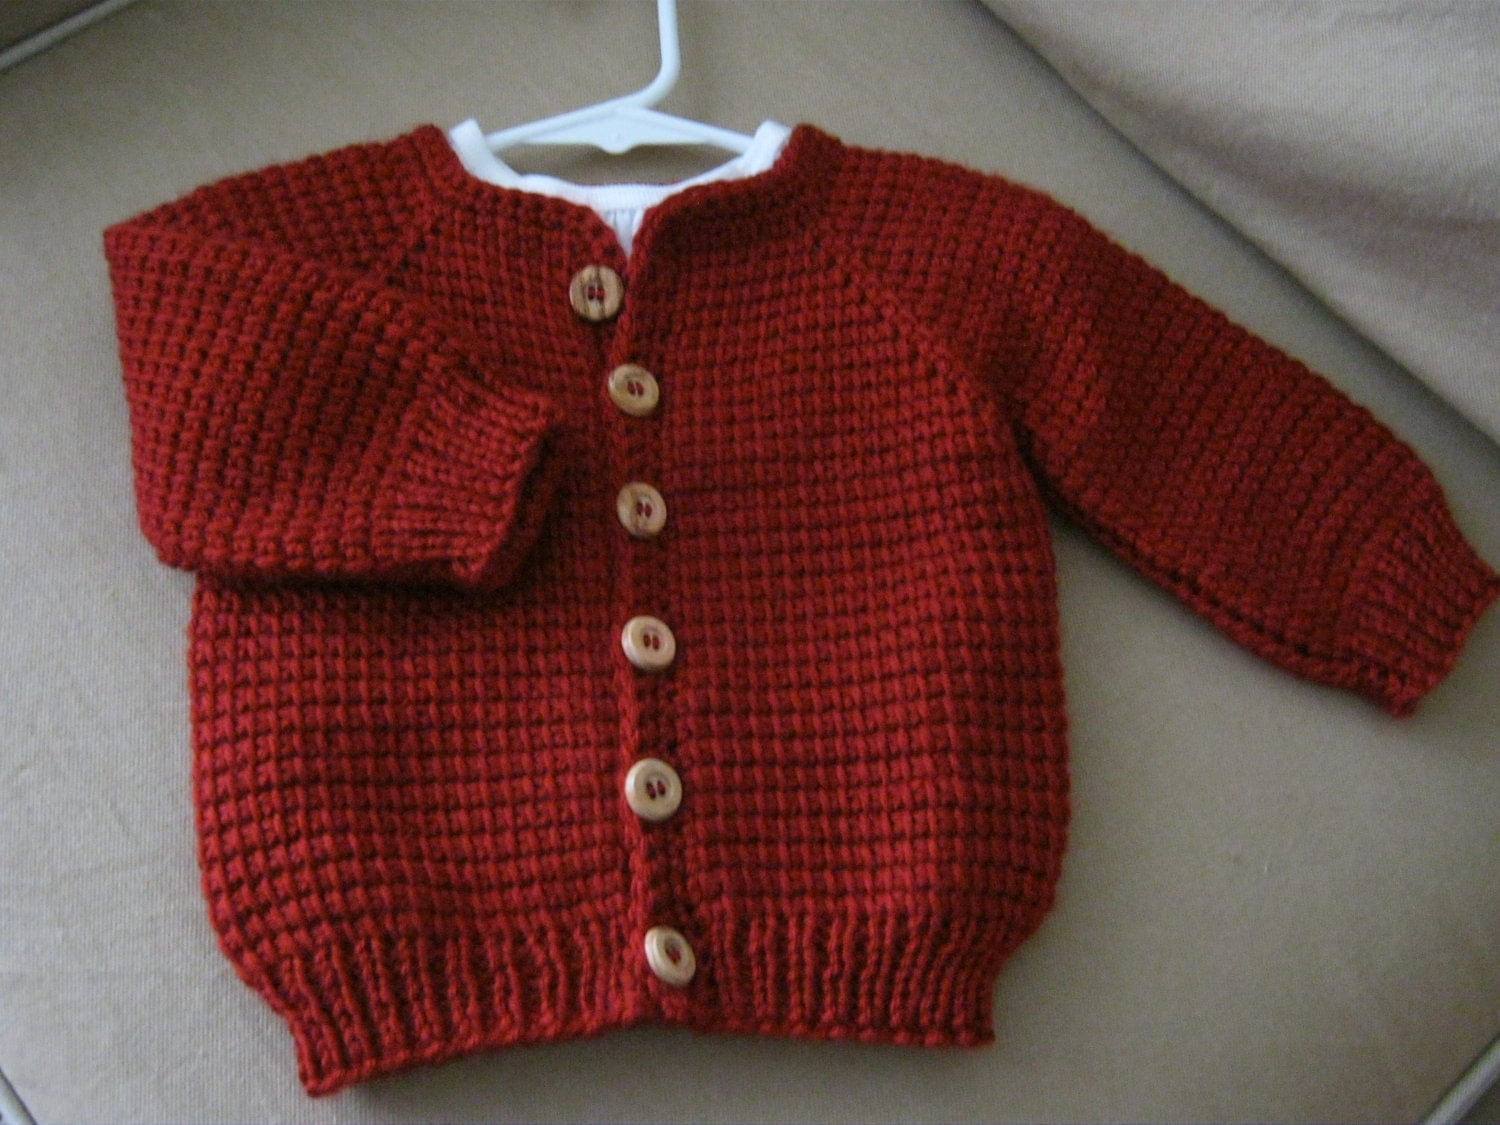 Crochet Red Baby Boy or Girl Sweater Tunisian Crochet MADE